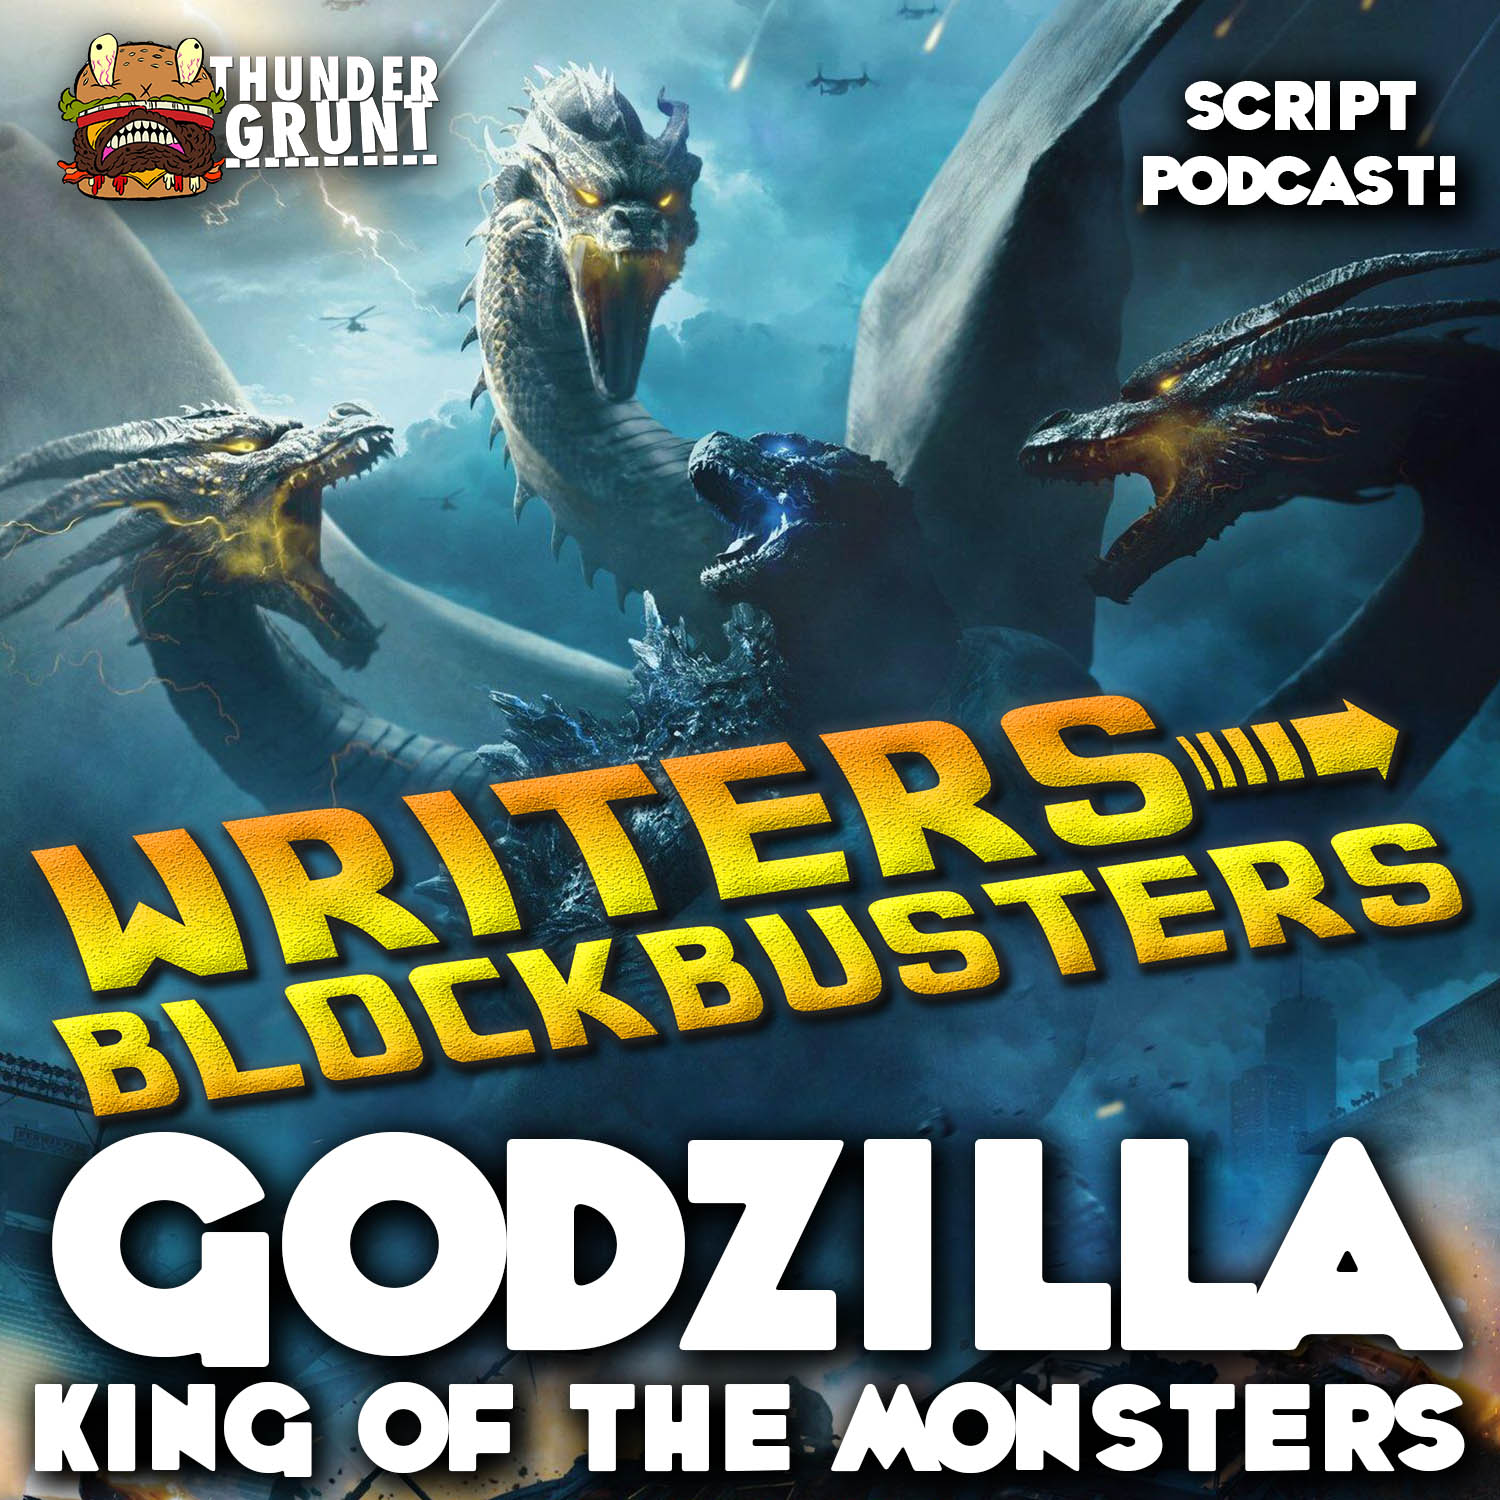 WRITERS/BLOCKBUSTERS 033 | GODZILLA: KING OF THE MONSTERS